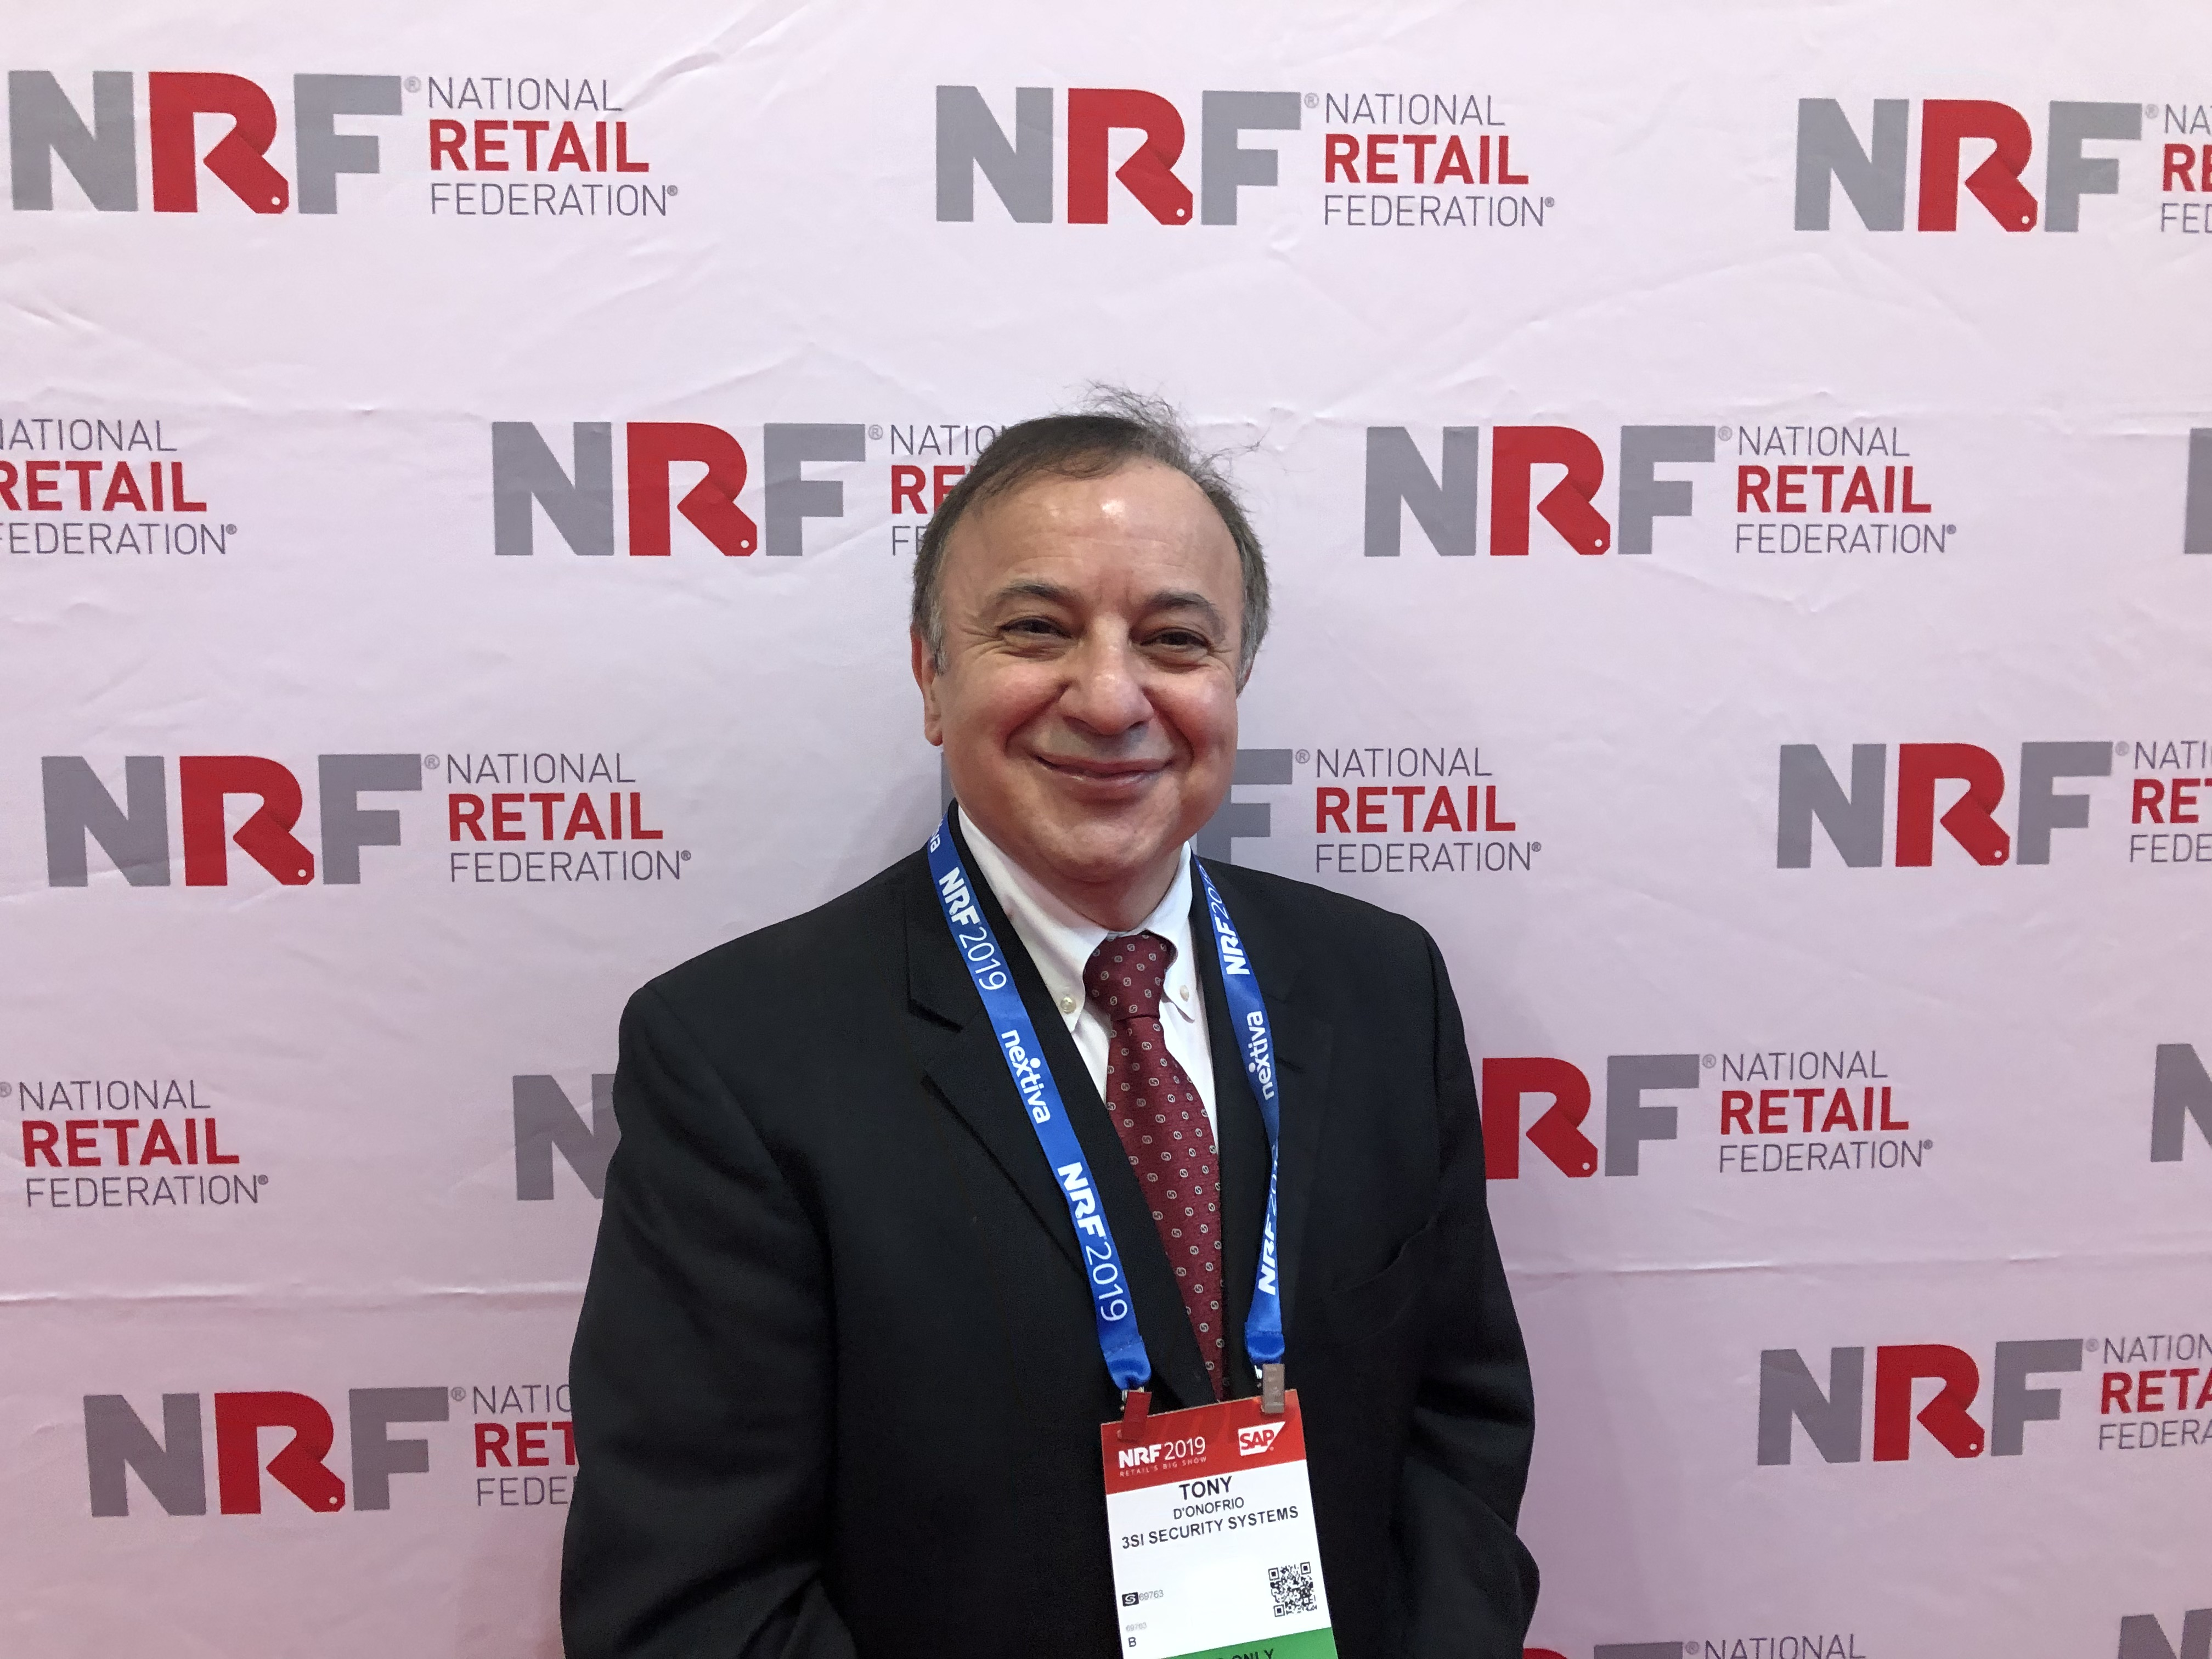 The Godfather of Retail had an amazing NRF 2019